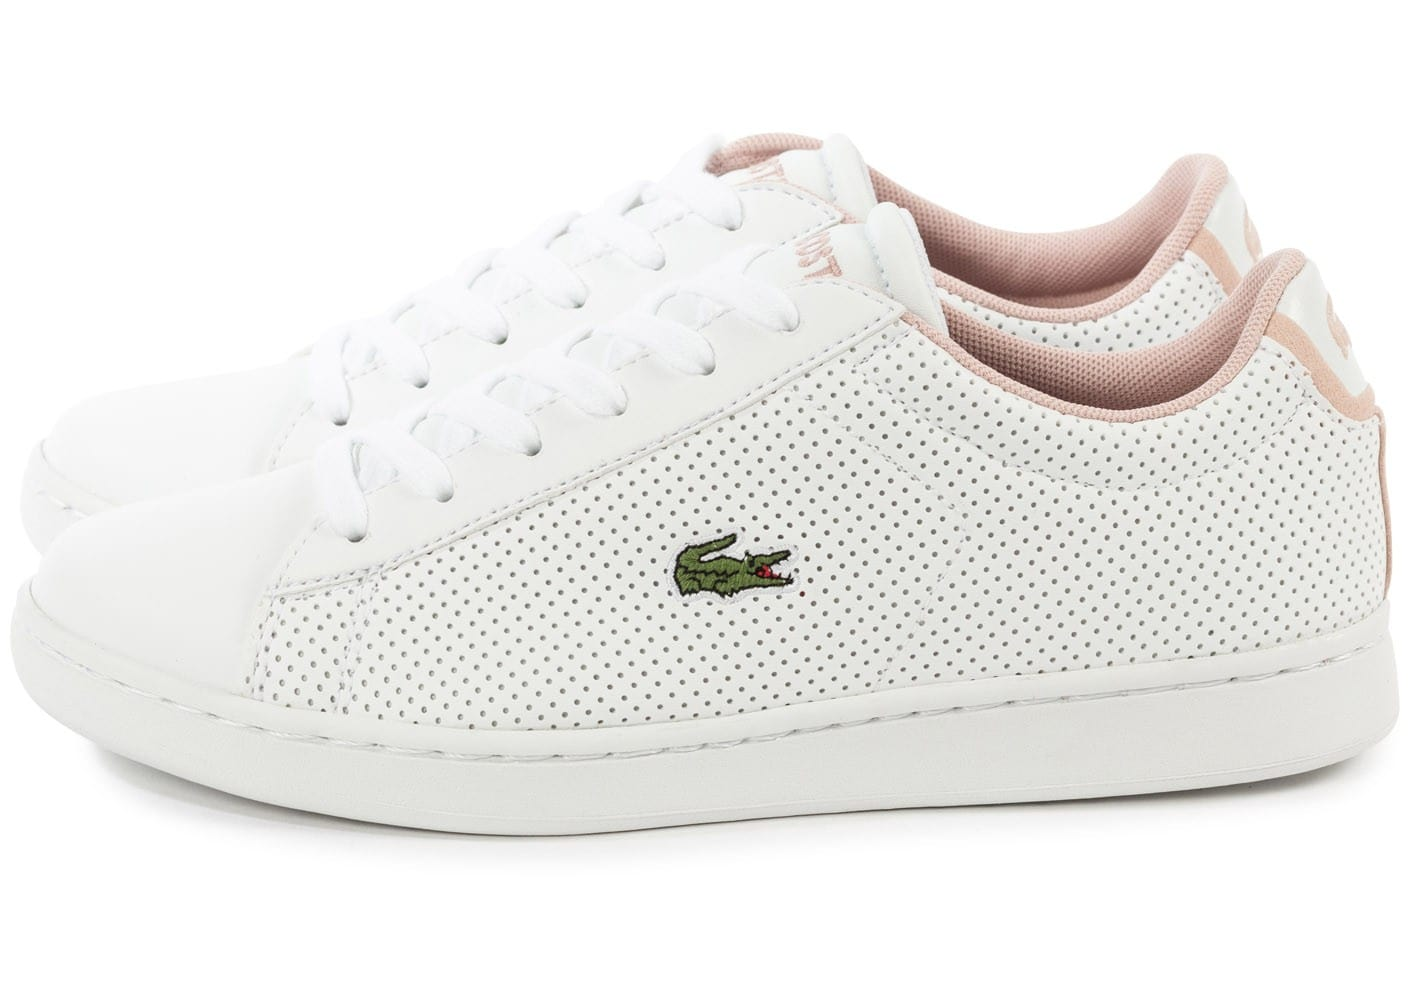 Chaussures Lacoste 33 multicolores Casual fille TJMWeuGuM